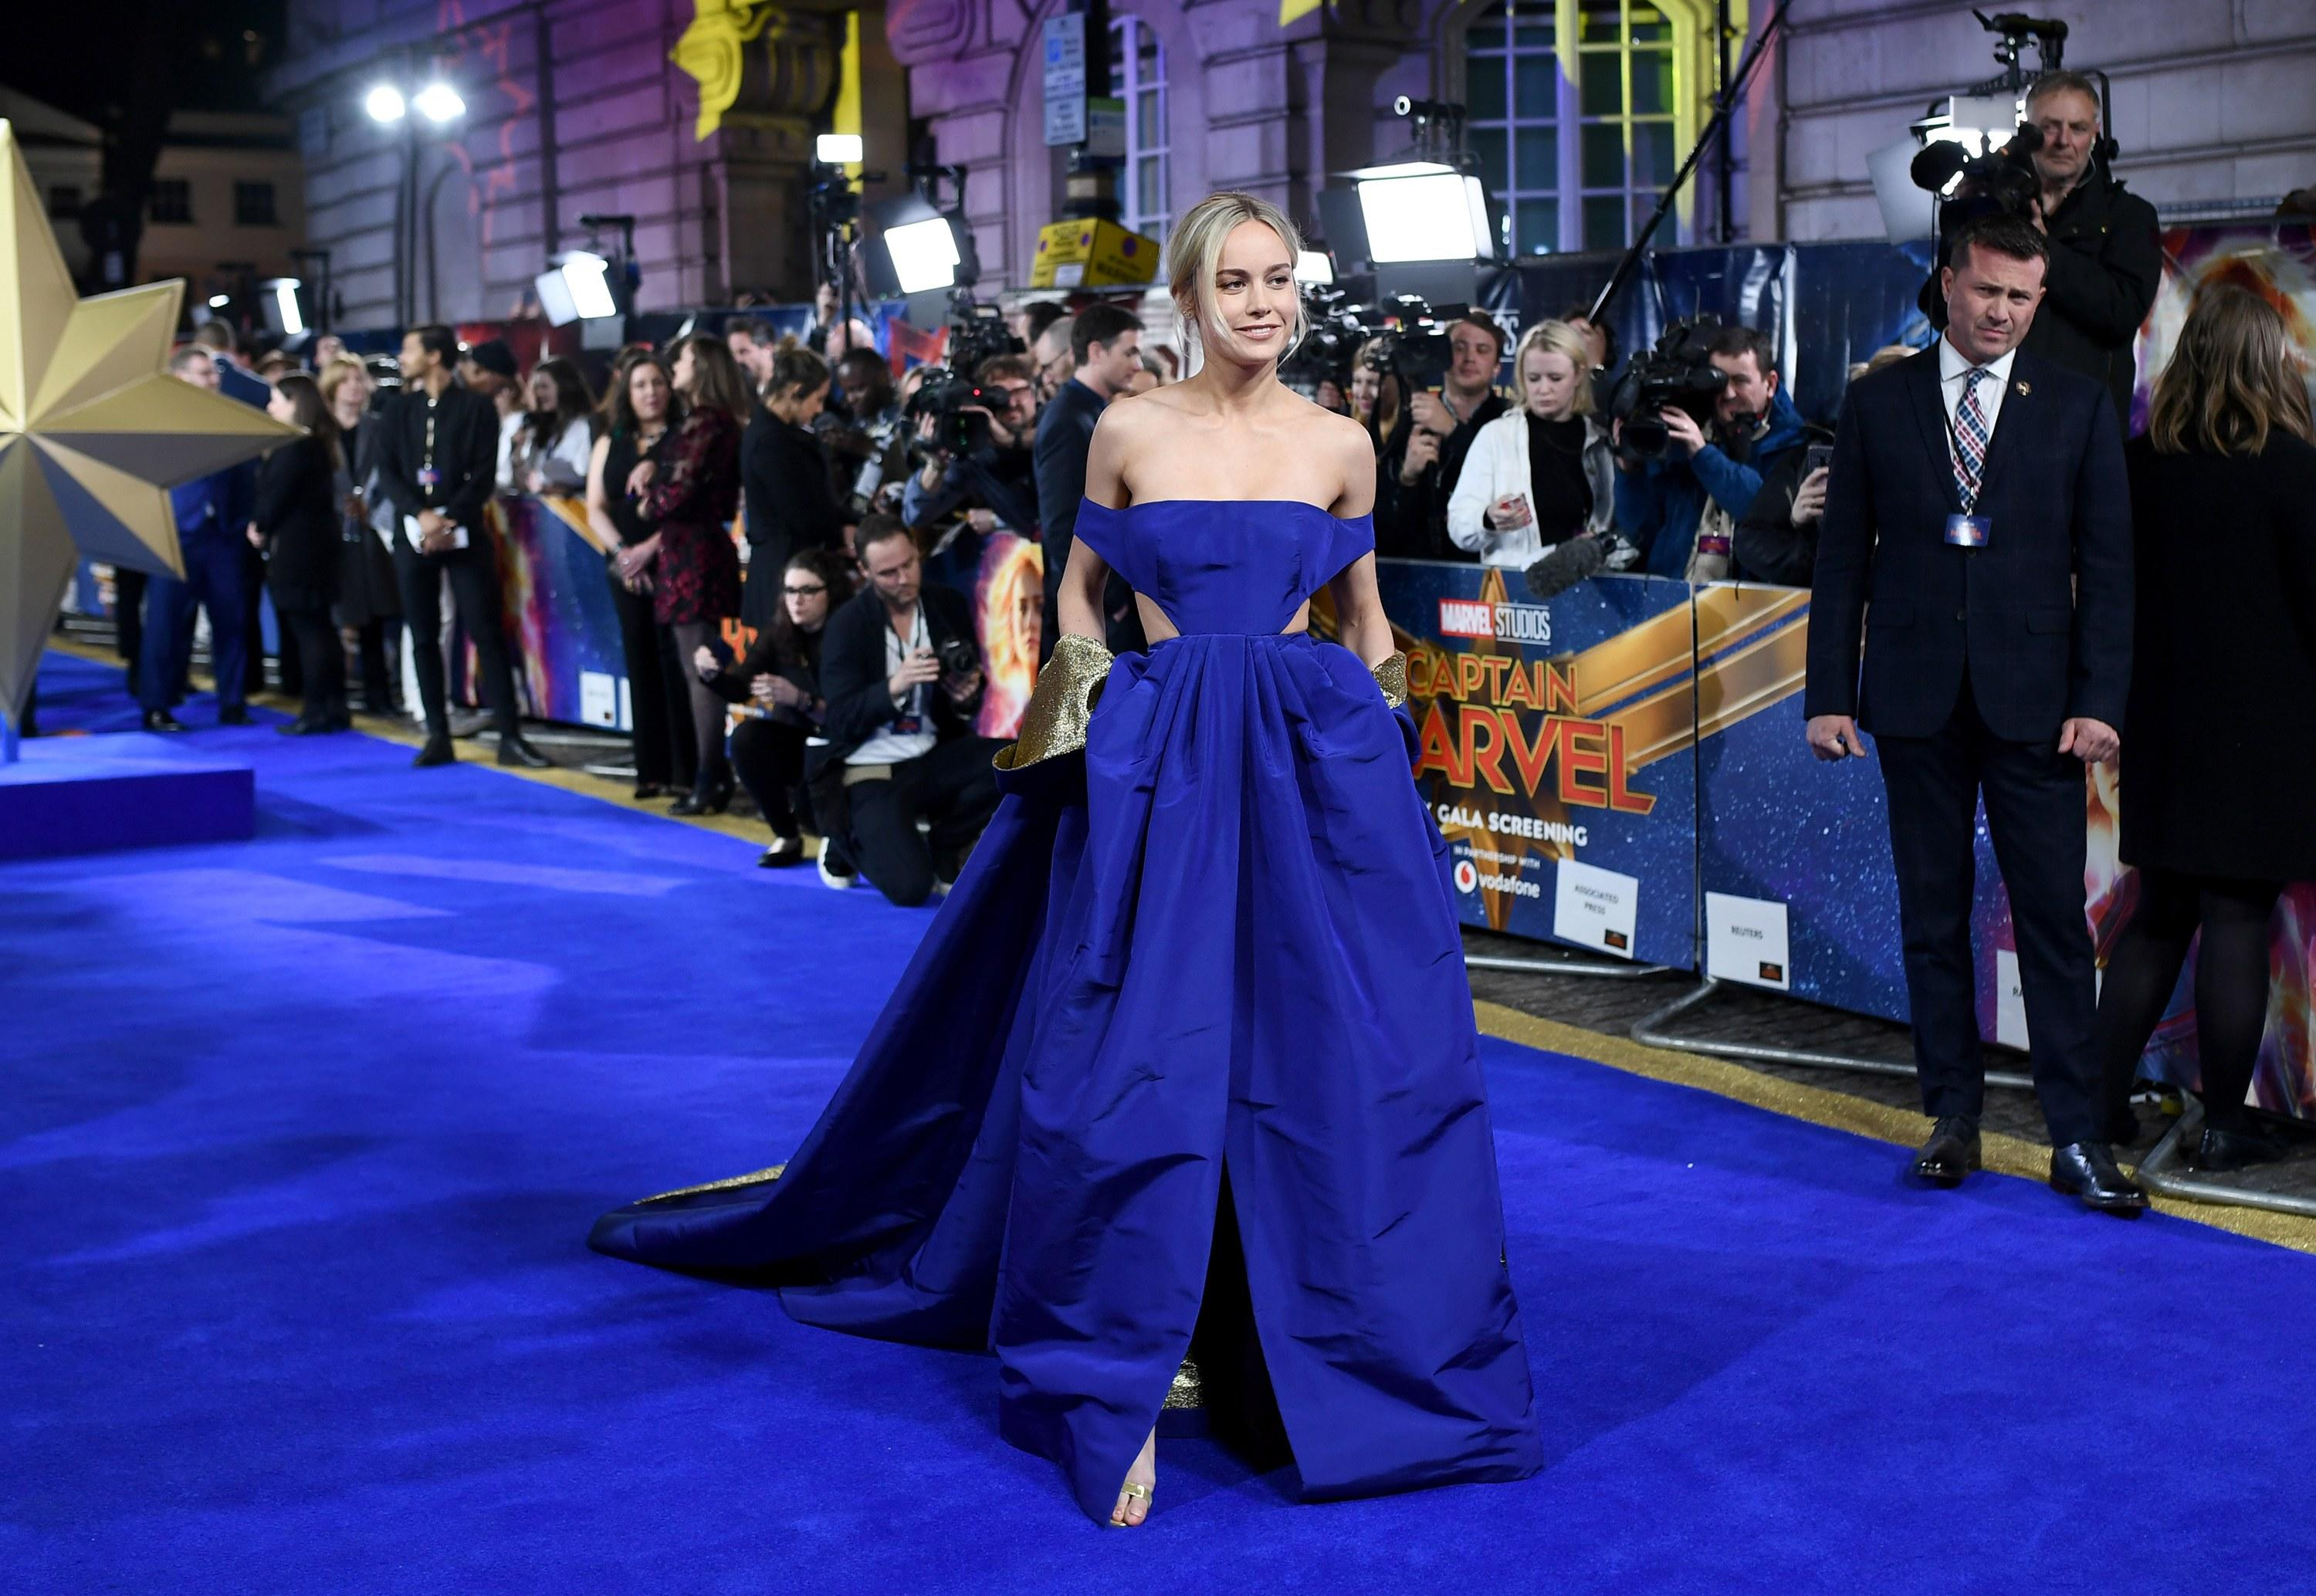 brie larson attends the captain marvel premiere dressed as a real